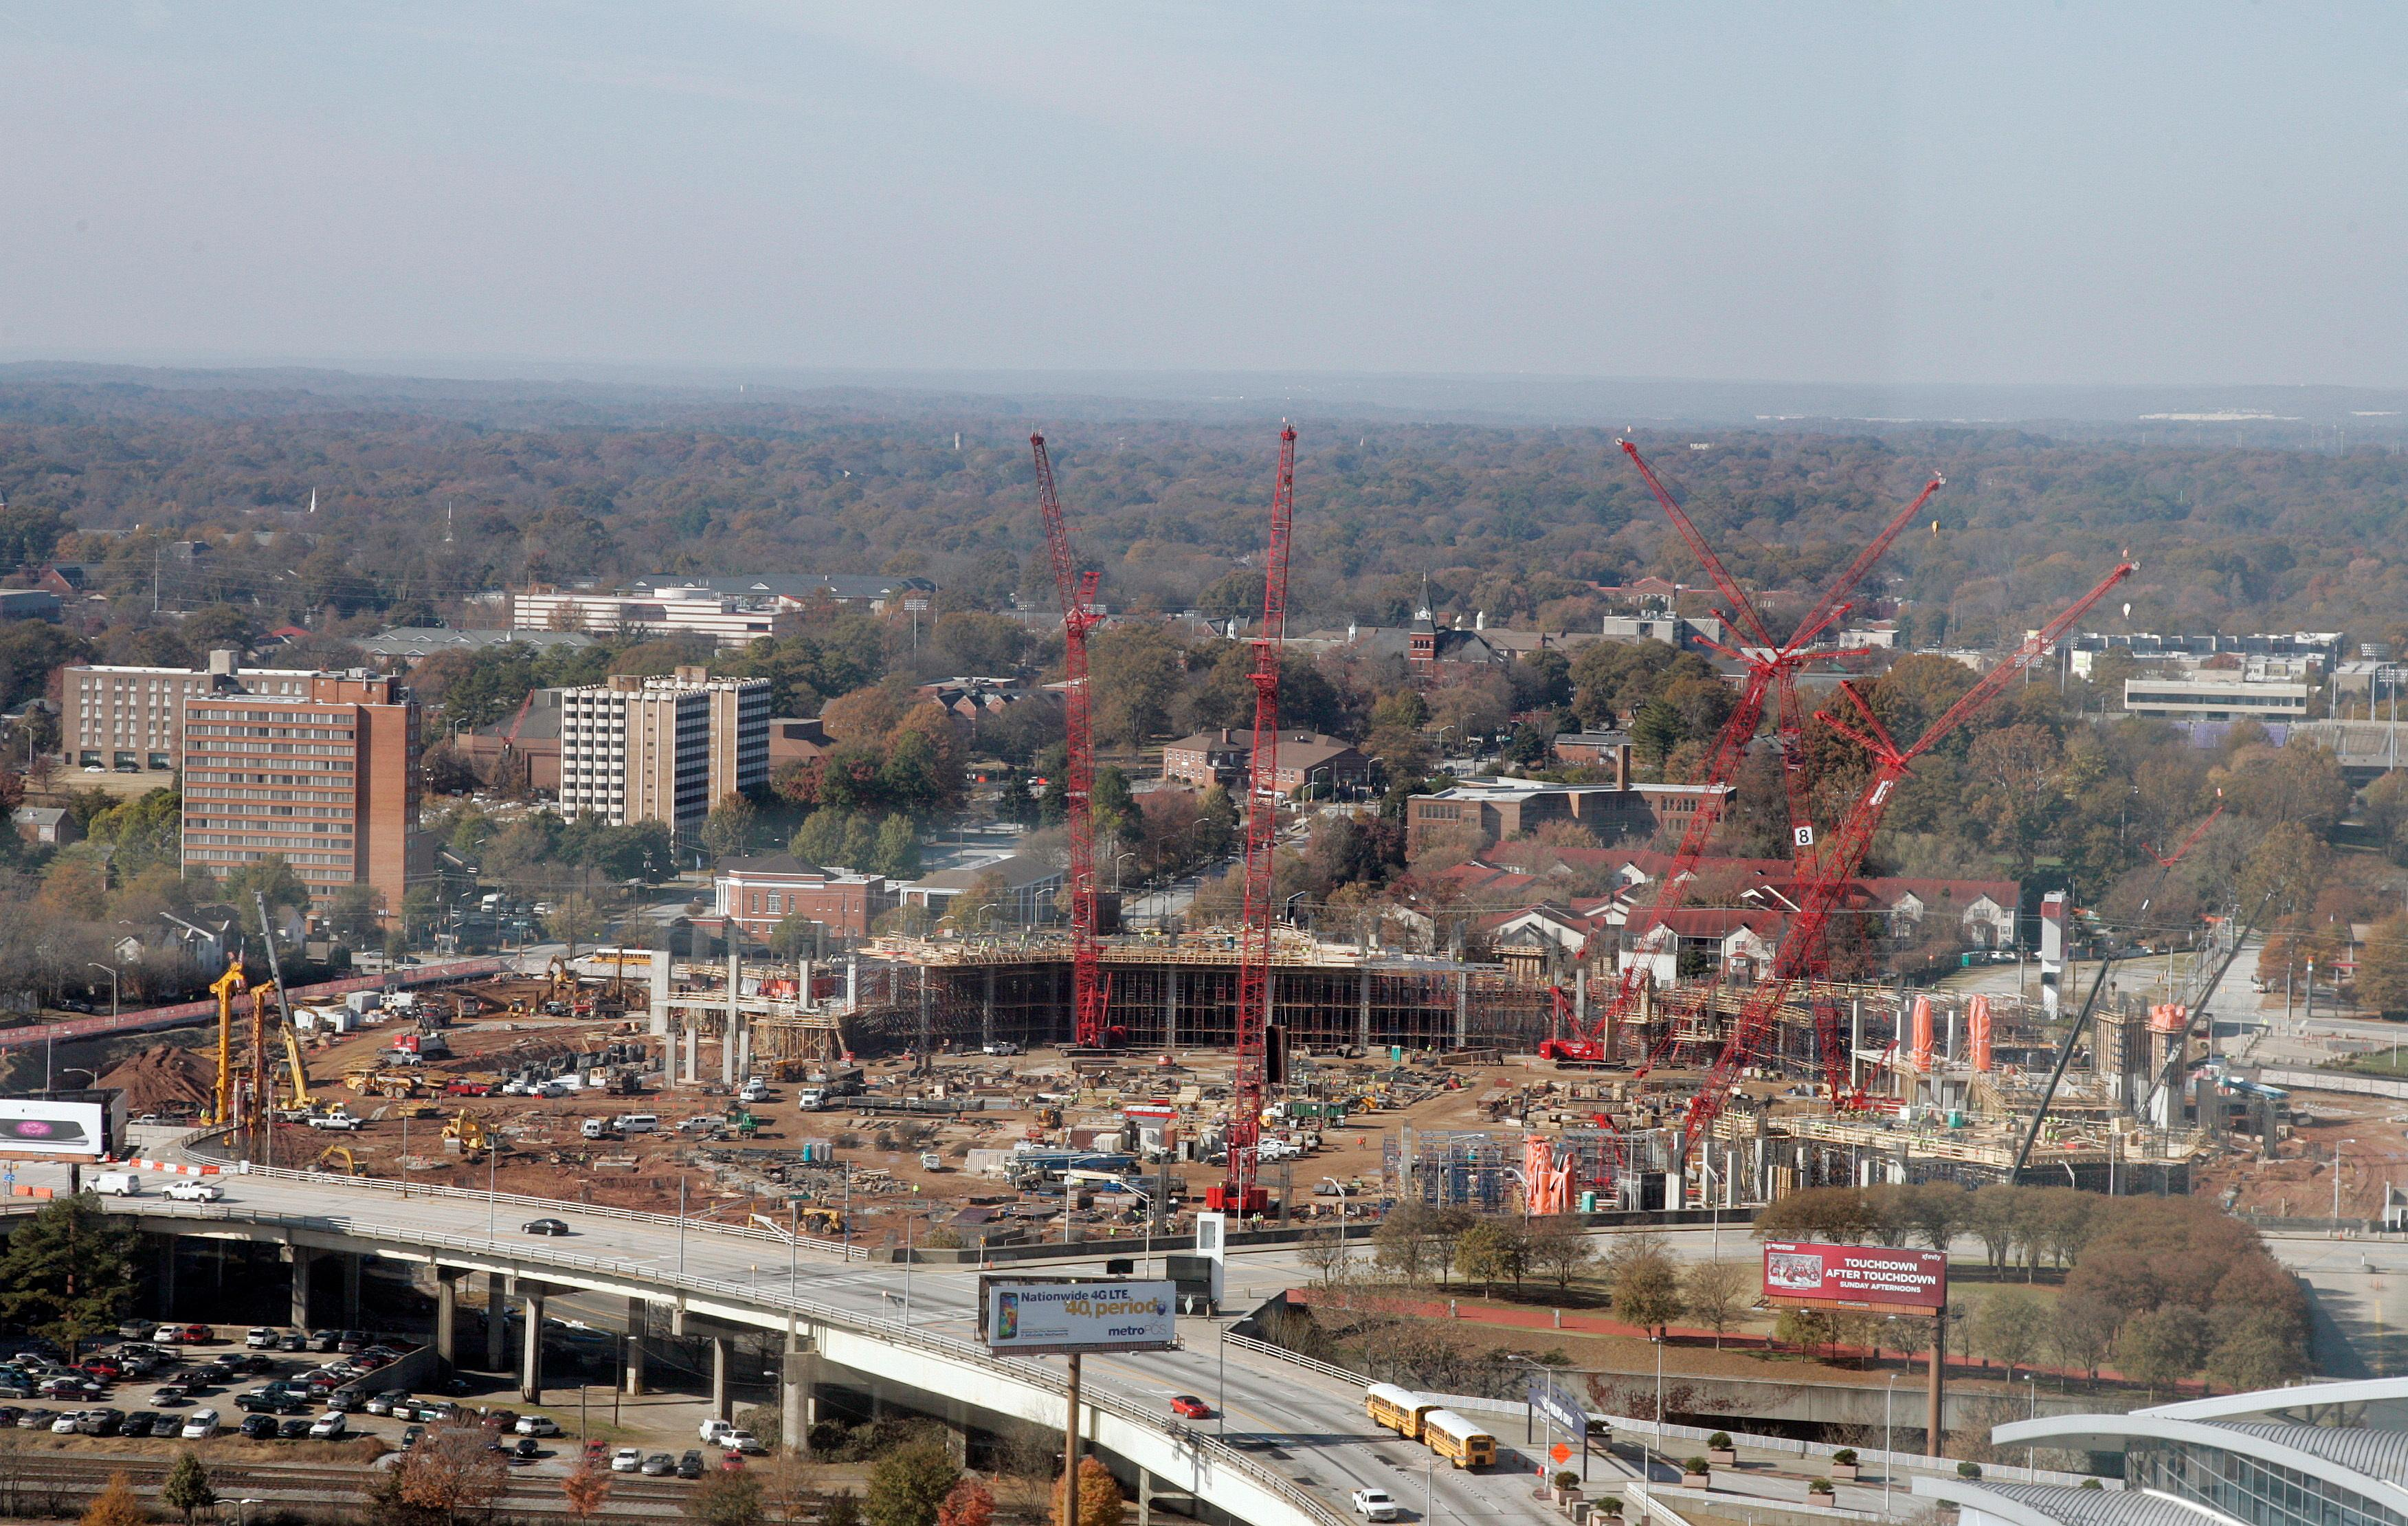 In this Nov. 20, 2014 photo, construction crews work on the the Mercedes-Benz stadium, in Atlanta. The facility is the new home of the National Football League's Atlanta Falcons and Major League Soccer's Atlanta United. (AP Photo/John Bazemore)